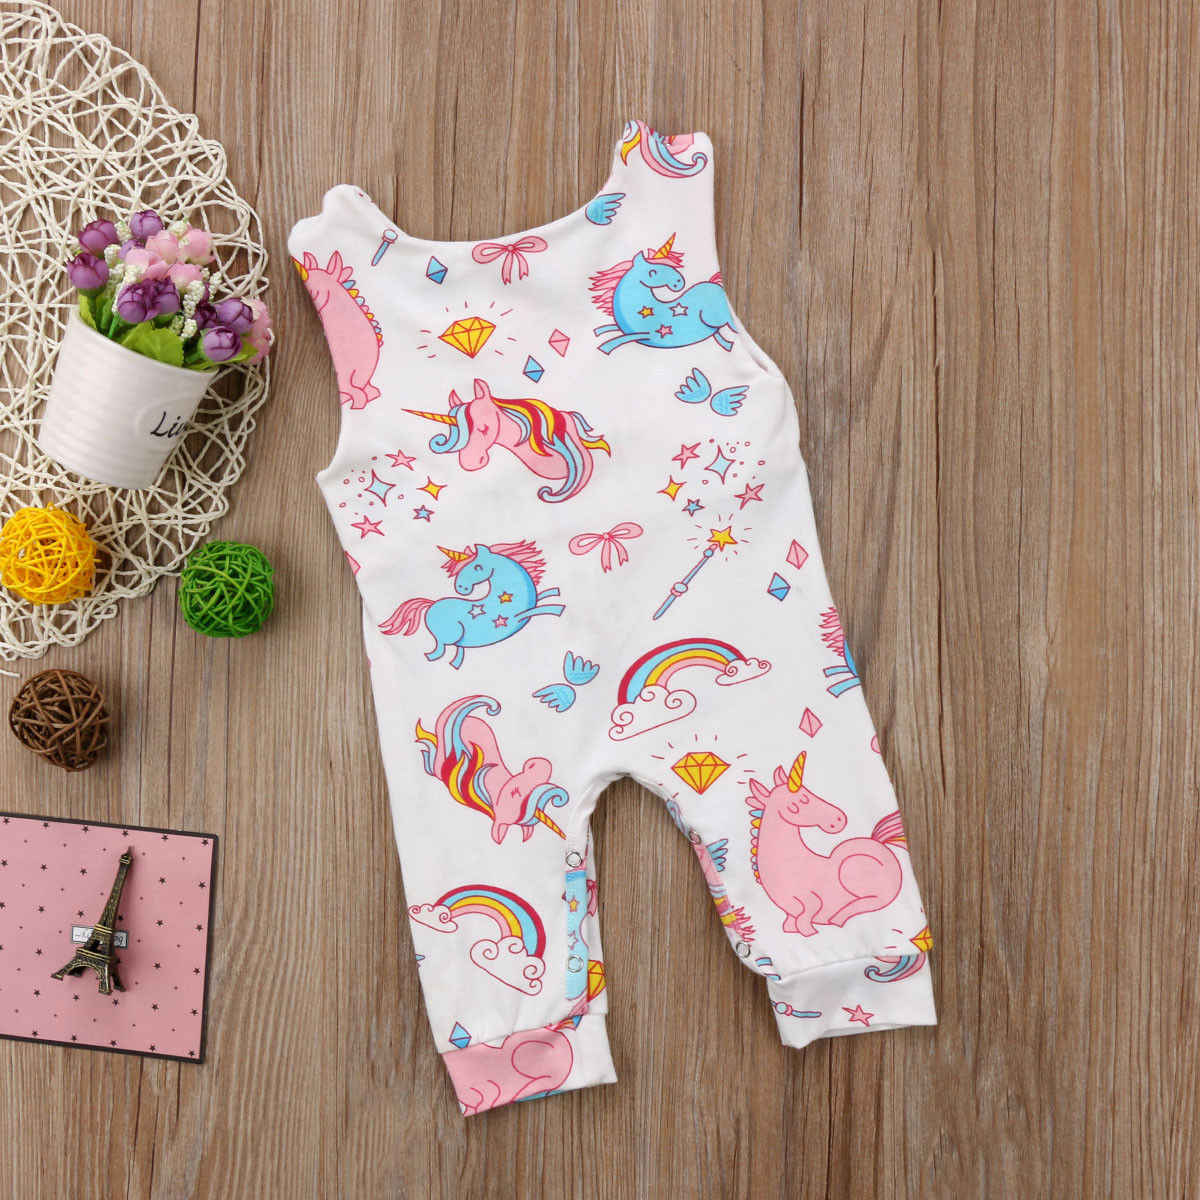 88933909cd8 ... Pudcoco Newborn Baby Clothing Cute Unicorn Sleeveless Romper Jumpsuit  Cotton baby girl boy clothes Cartoon Summer ...